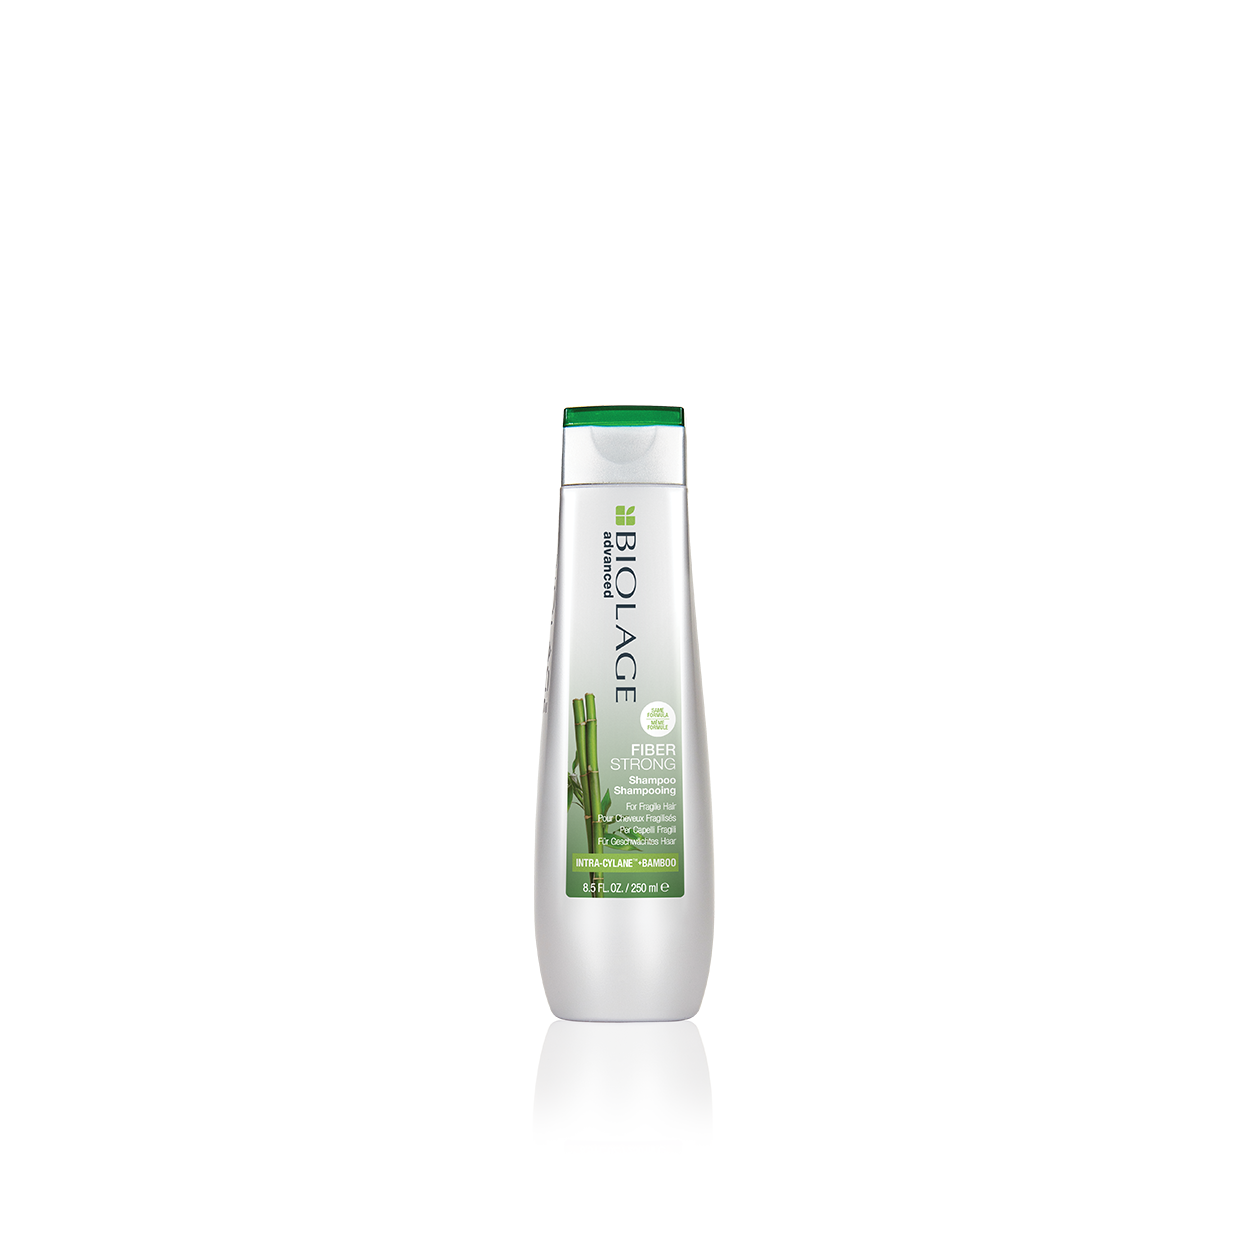 Biolage Advanced FiberStrong Fragile Hair Shampoo Strengthening Shampoo for Fragile Hair